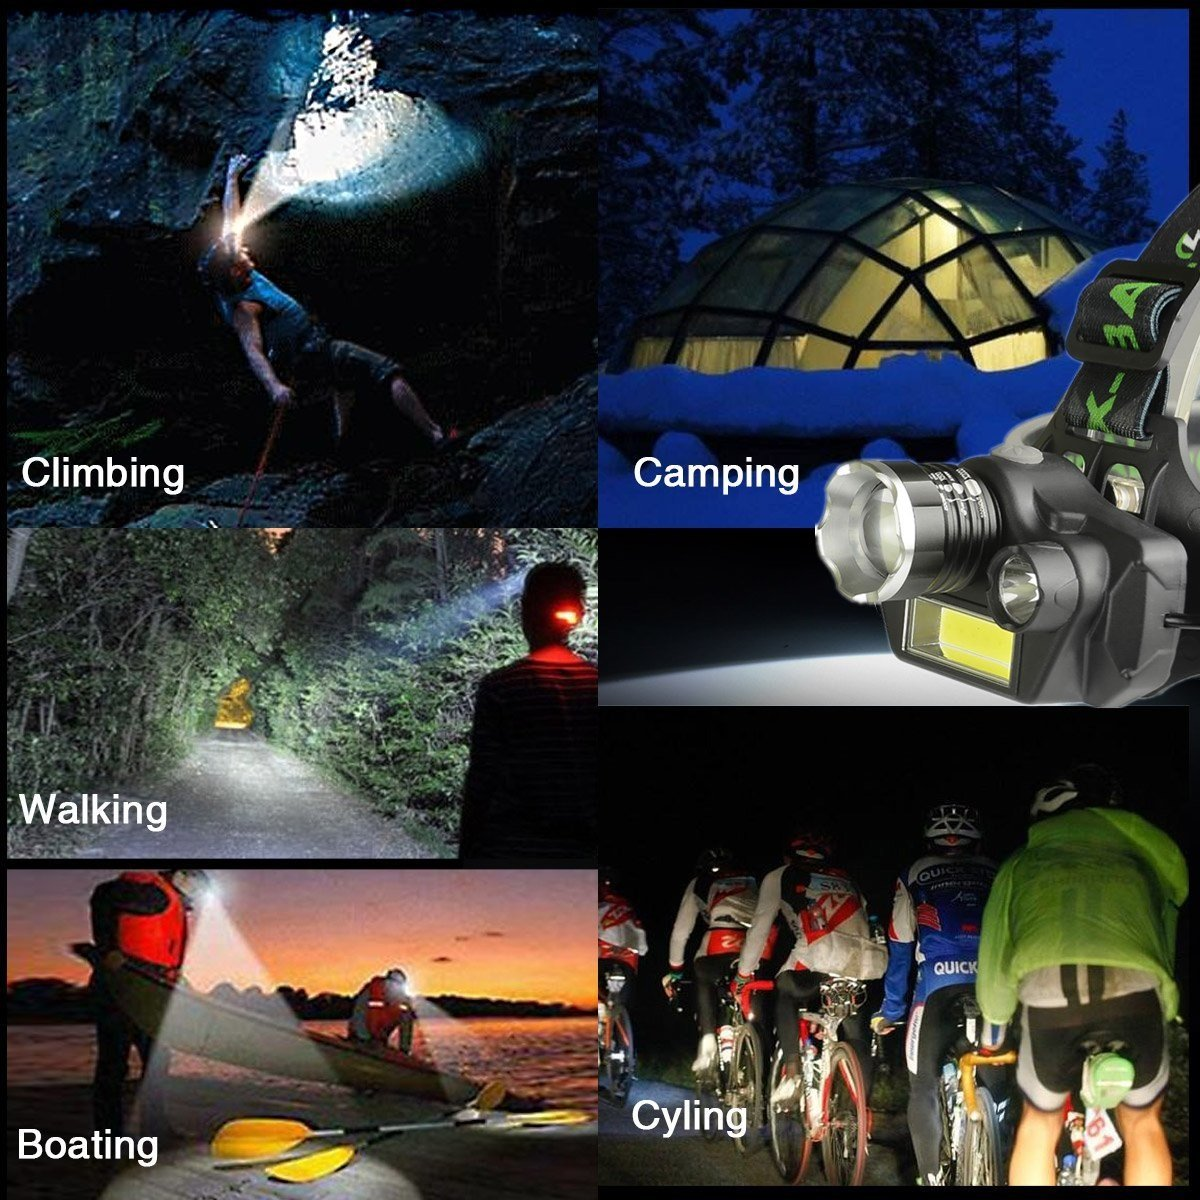 LED Headlamp Flashlight, USB Rechargeable LED Headlamp- Waterproof & Comfortable Headlight, Battery Powered Helmet Light, 8000 Lumen 4 Light 5 Modes Super Bright by KAILEDI. (Image #8)